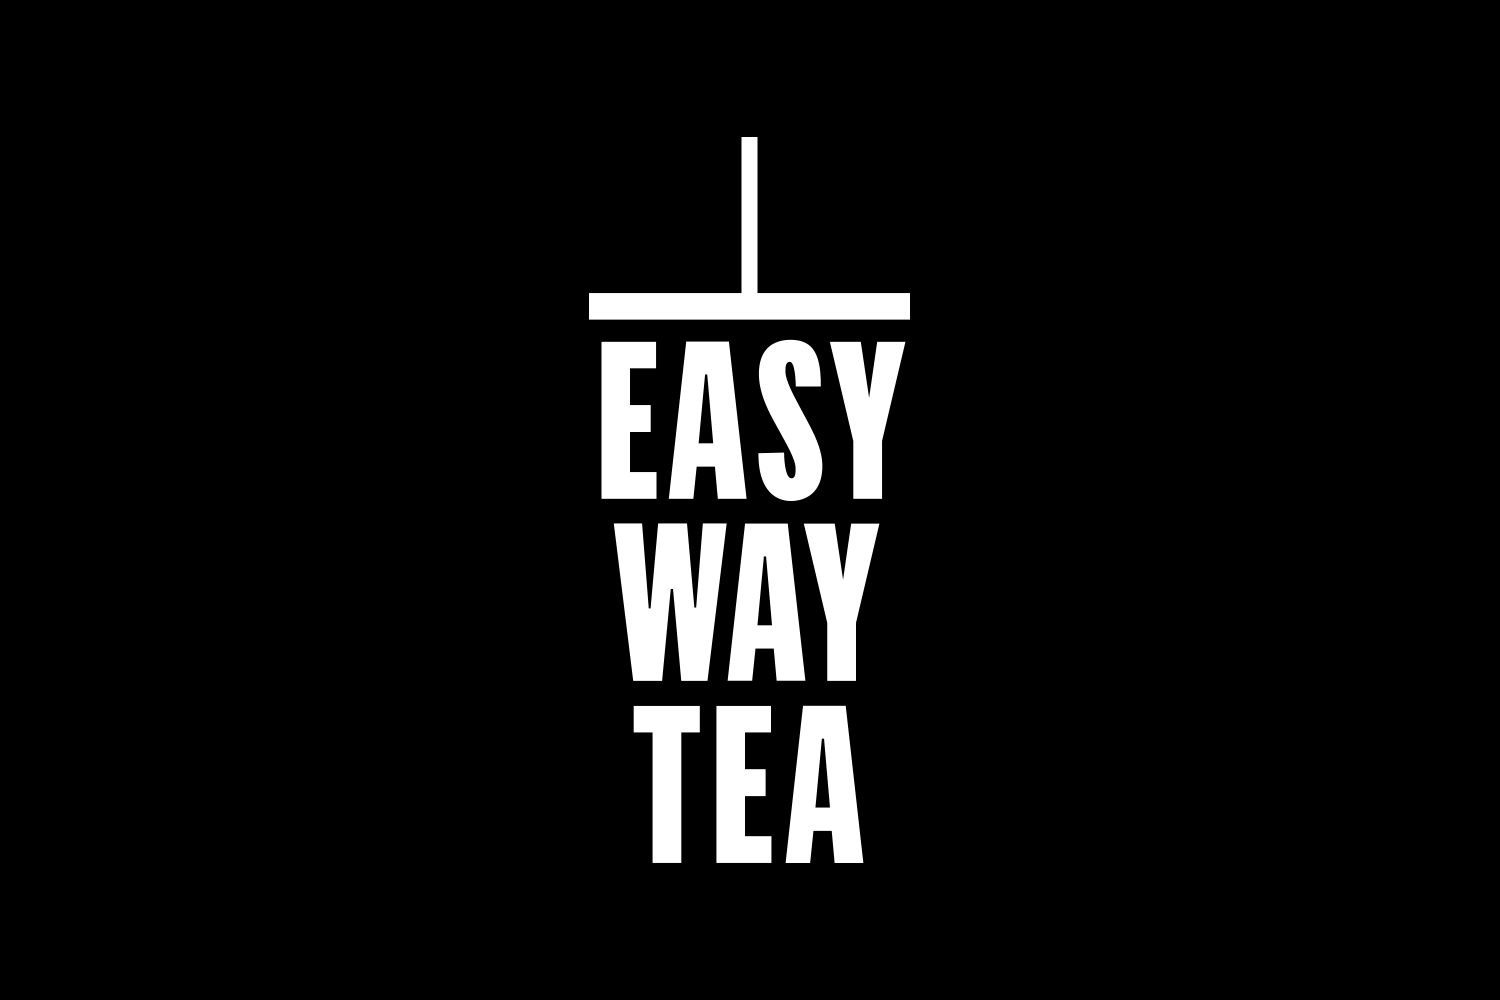 easy-way-tea-1-logo-hero